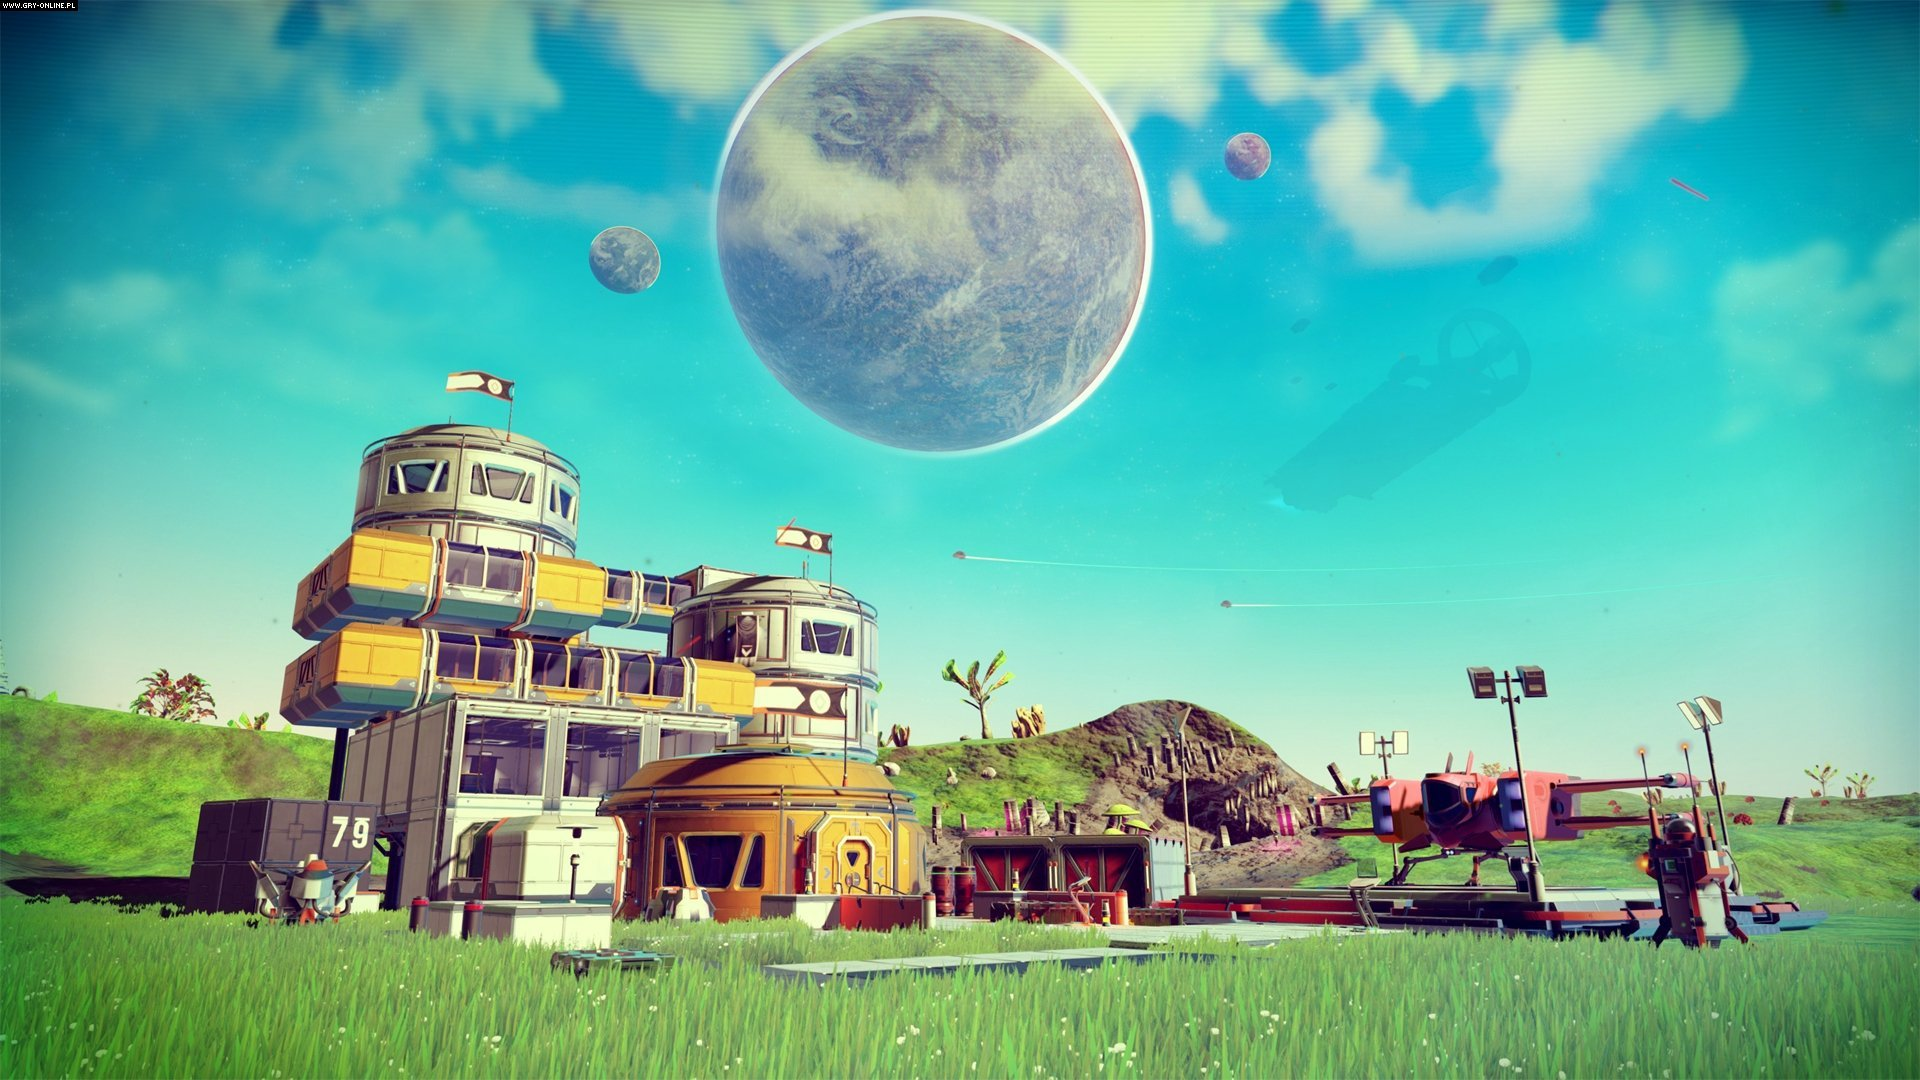 No Man's Sky PC, PS4 Games Image 4/35, Hello Games, Sony Interactive Entertainment